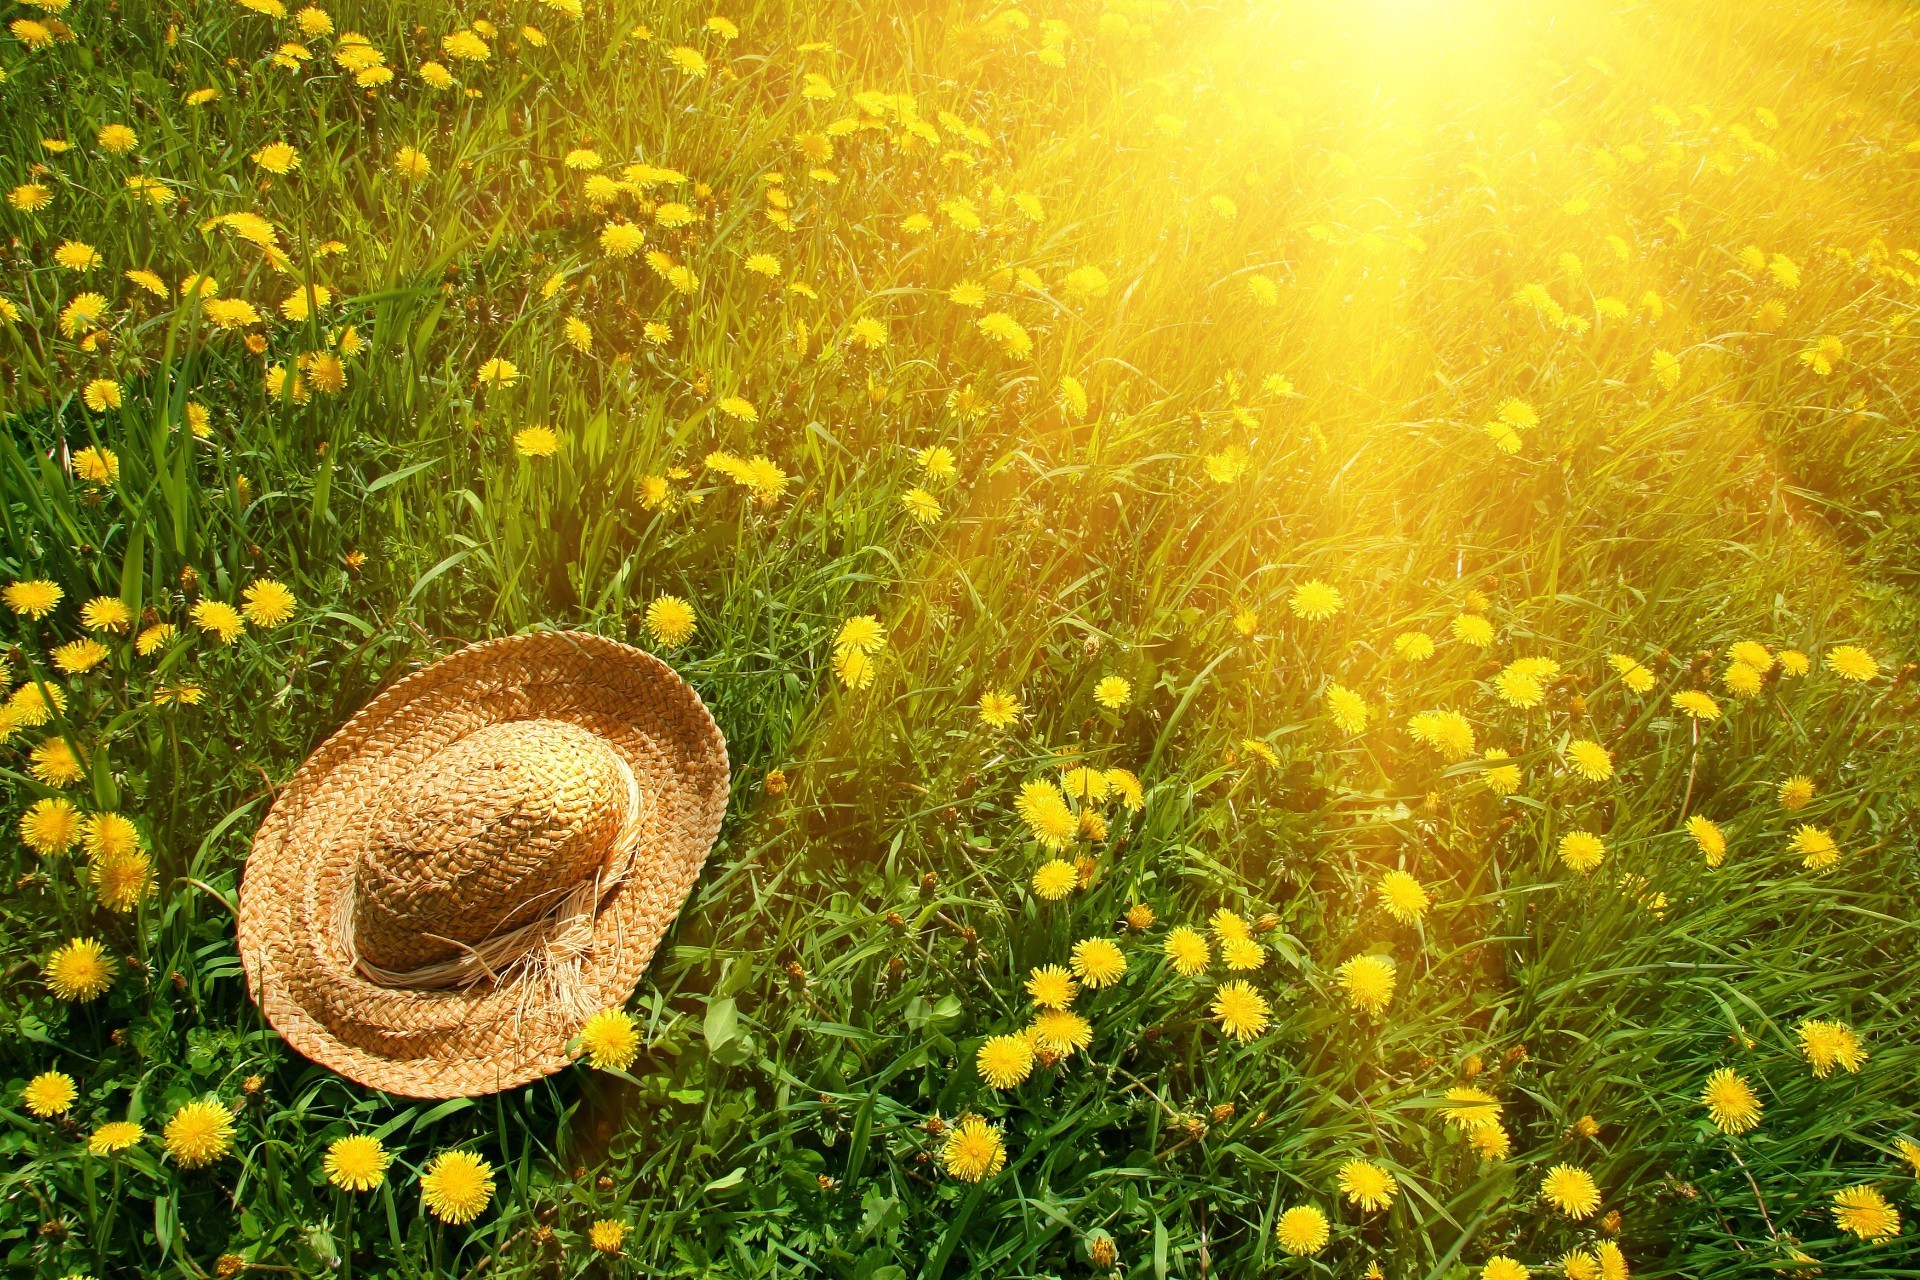 Wicker hat on the grass with yellow dandelions